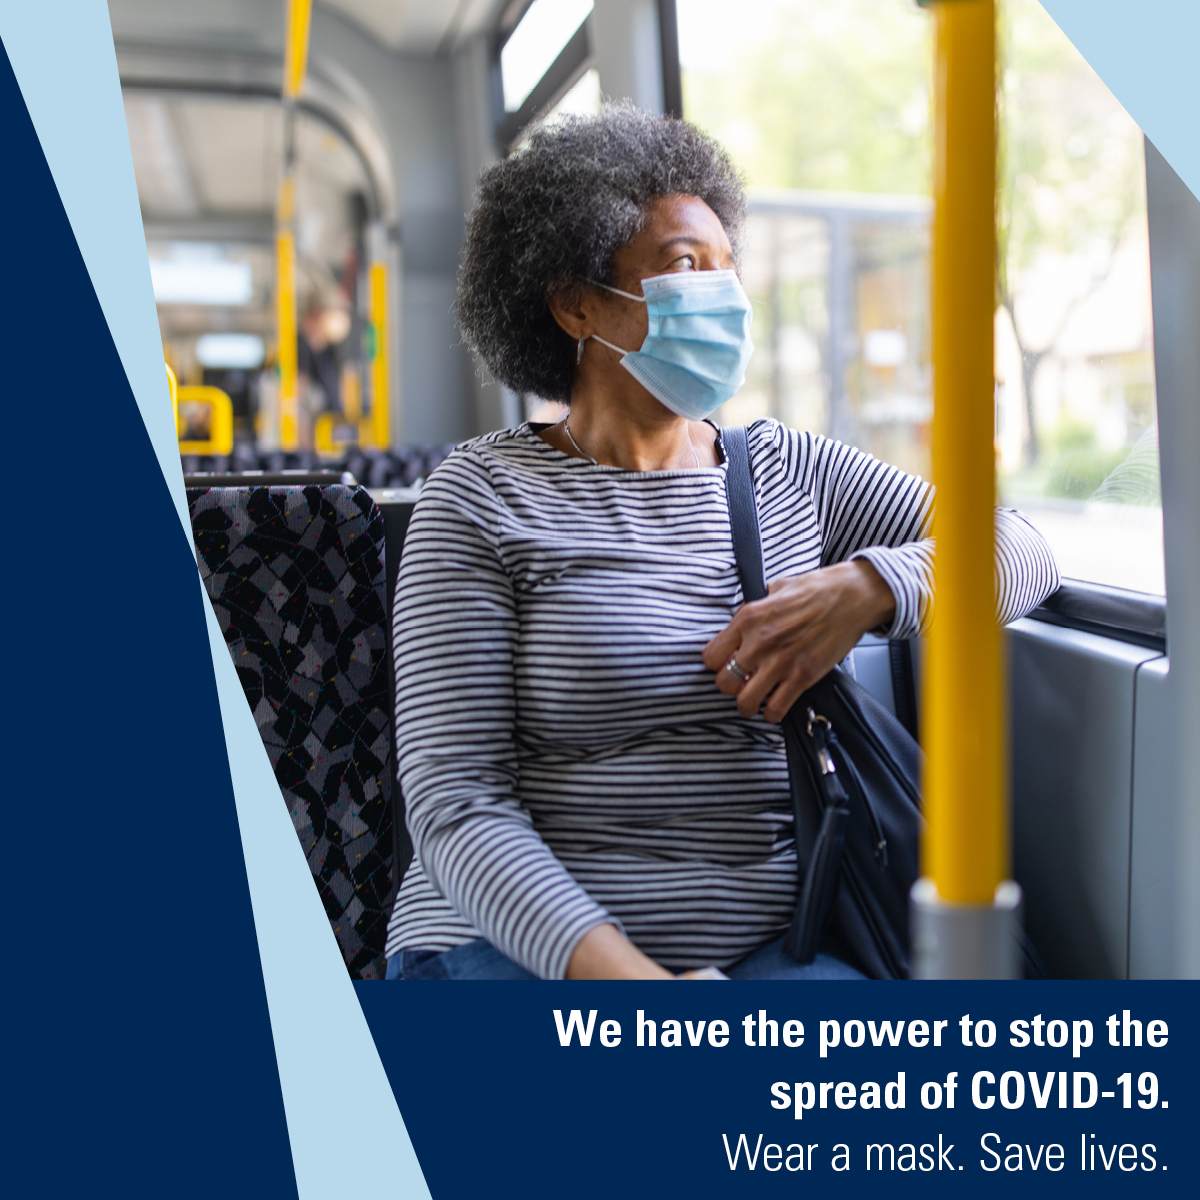 Masked woman sits on city bus. Caption: We have the power to stop the spread of COVID-19. Wear a mask. Save lives.